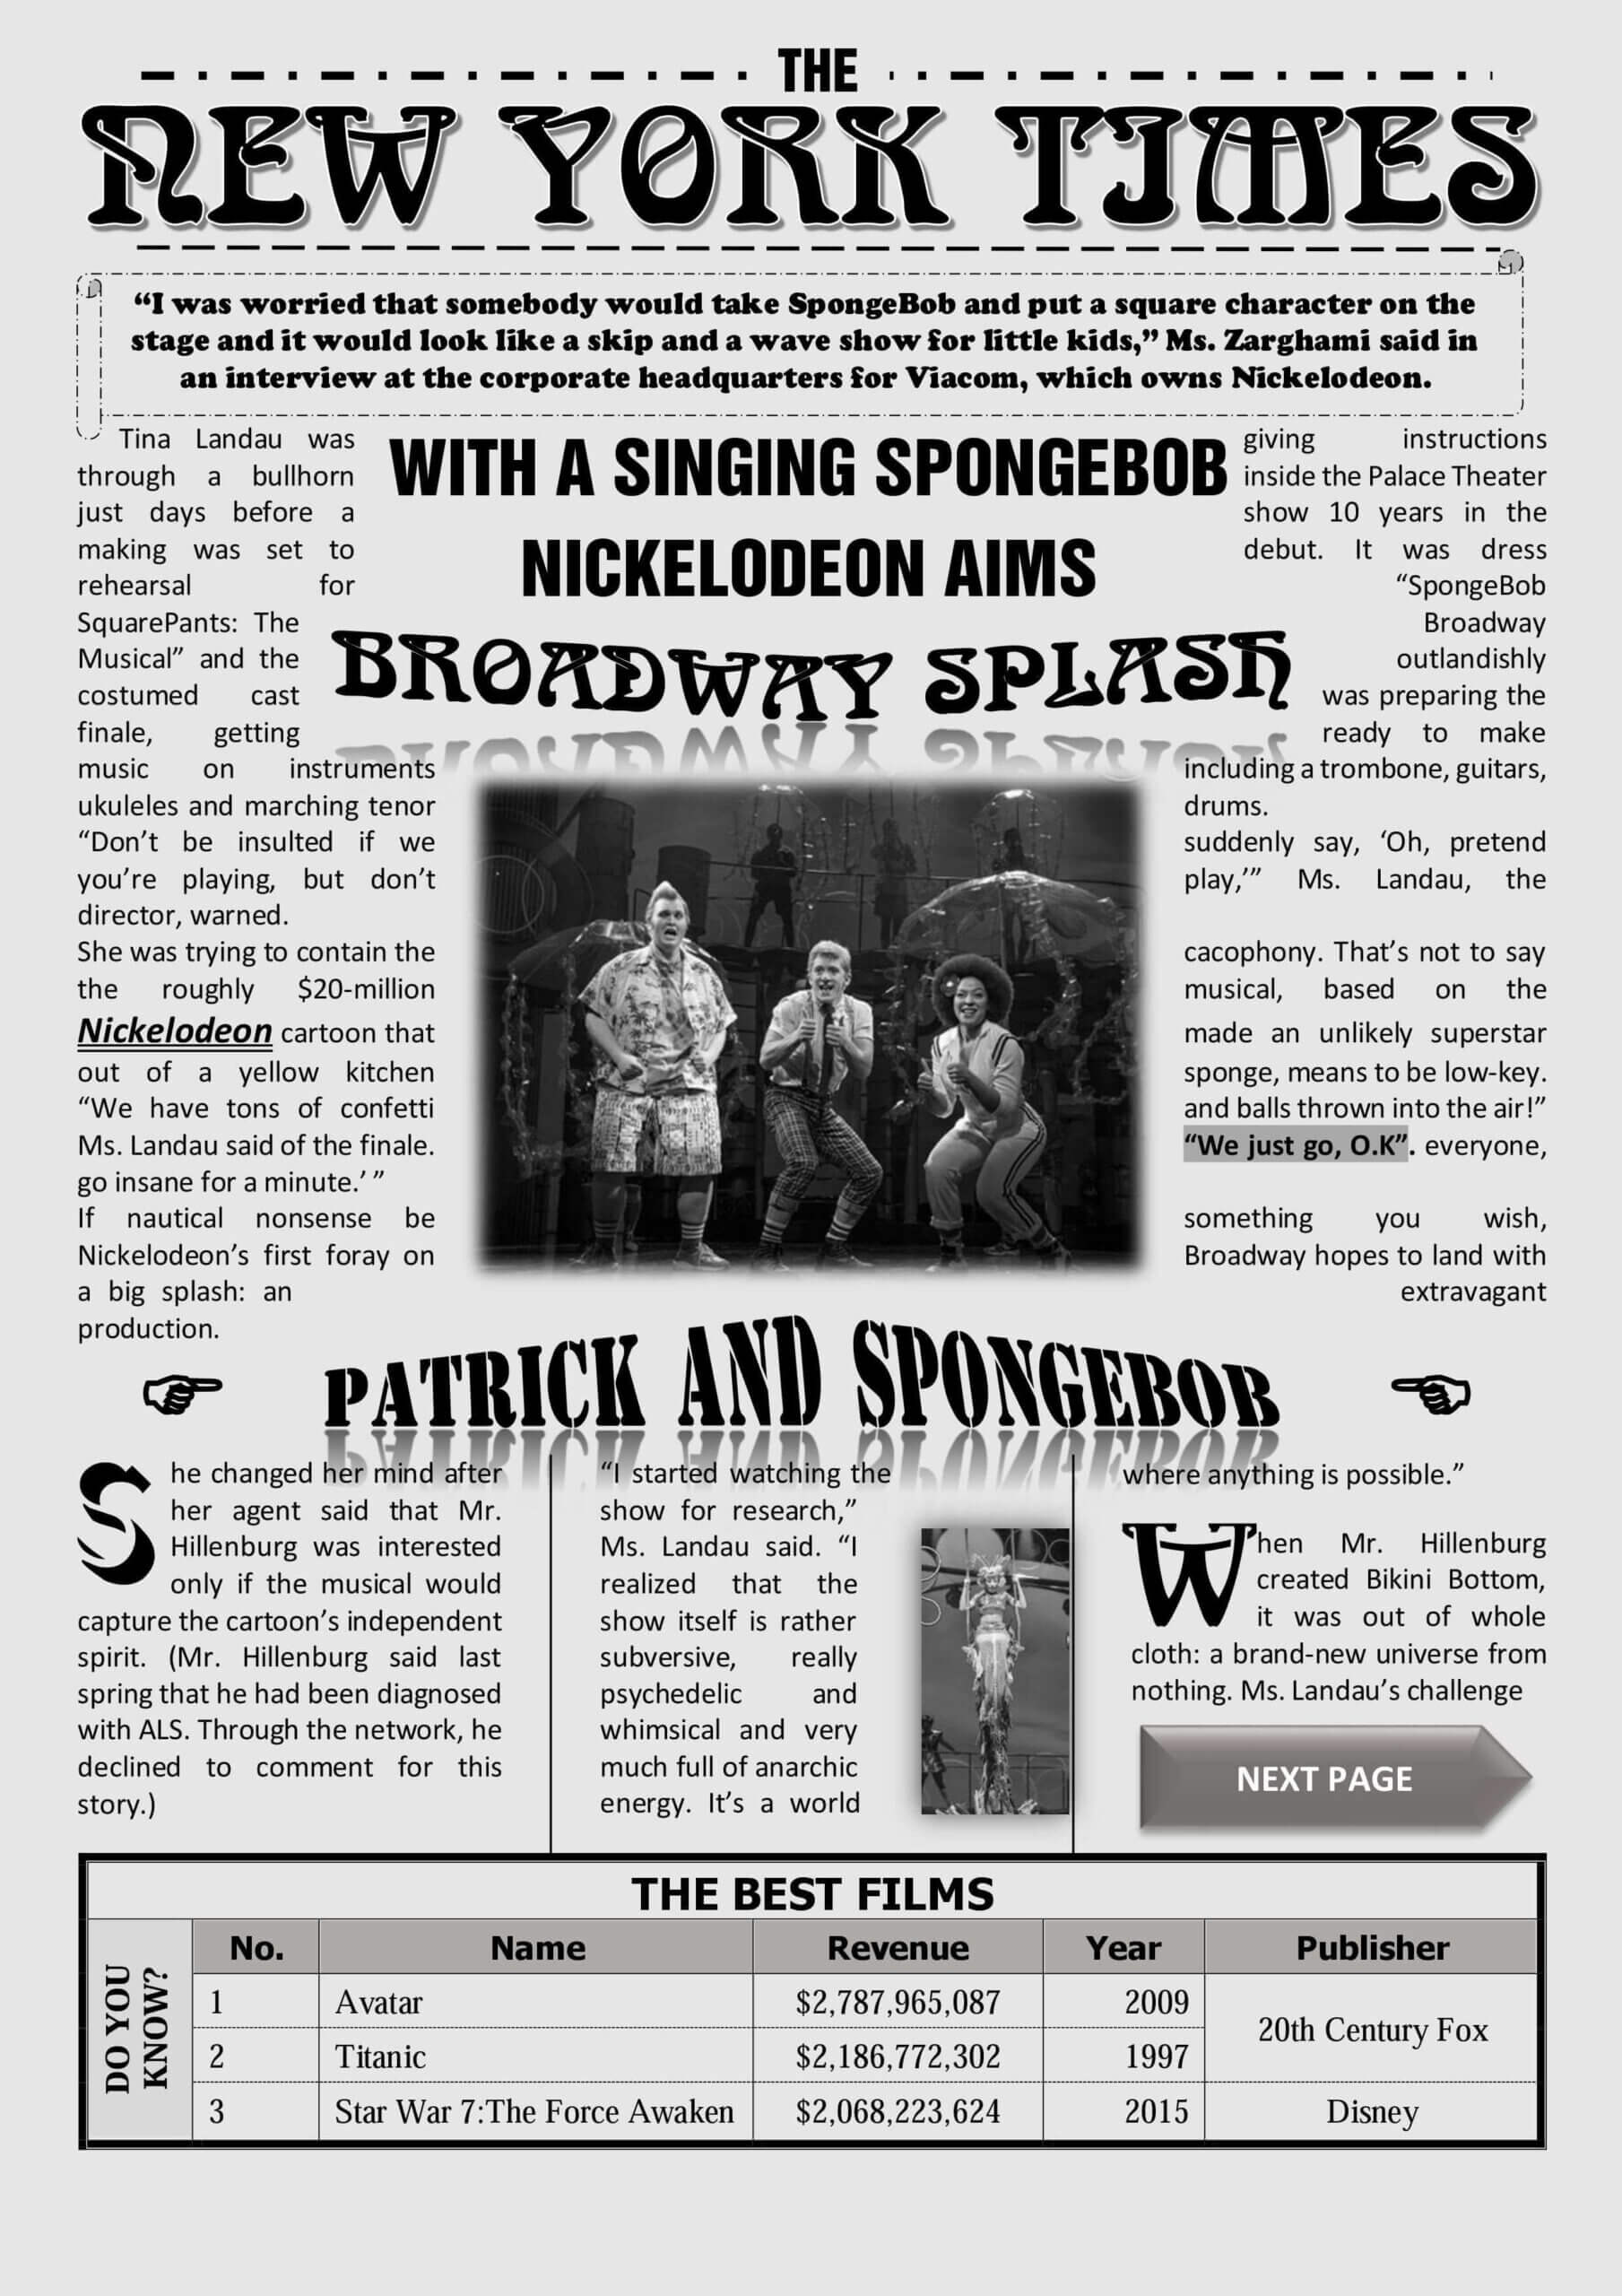 001 Free Newspaper Template For Word Striking Ideas Throughout Blank Newspaper Template For Word